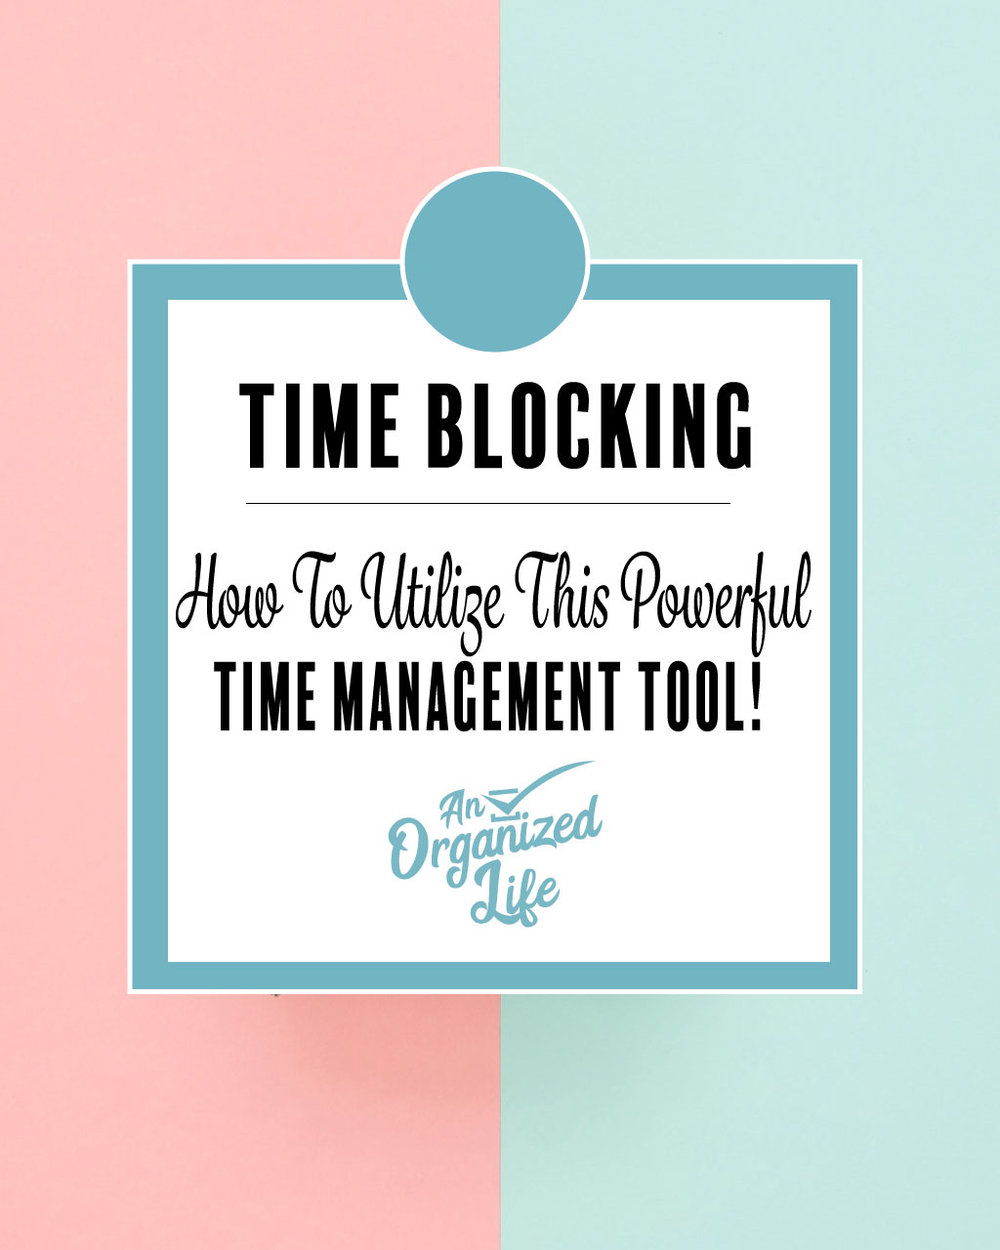 Time blocking: An Organized Life